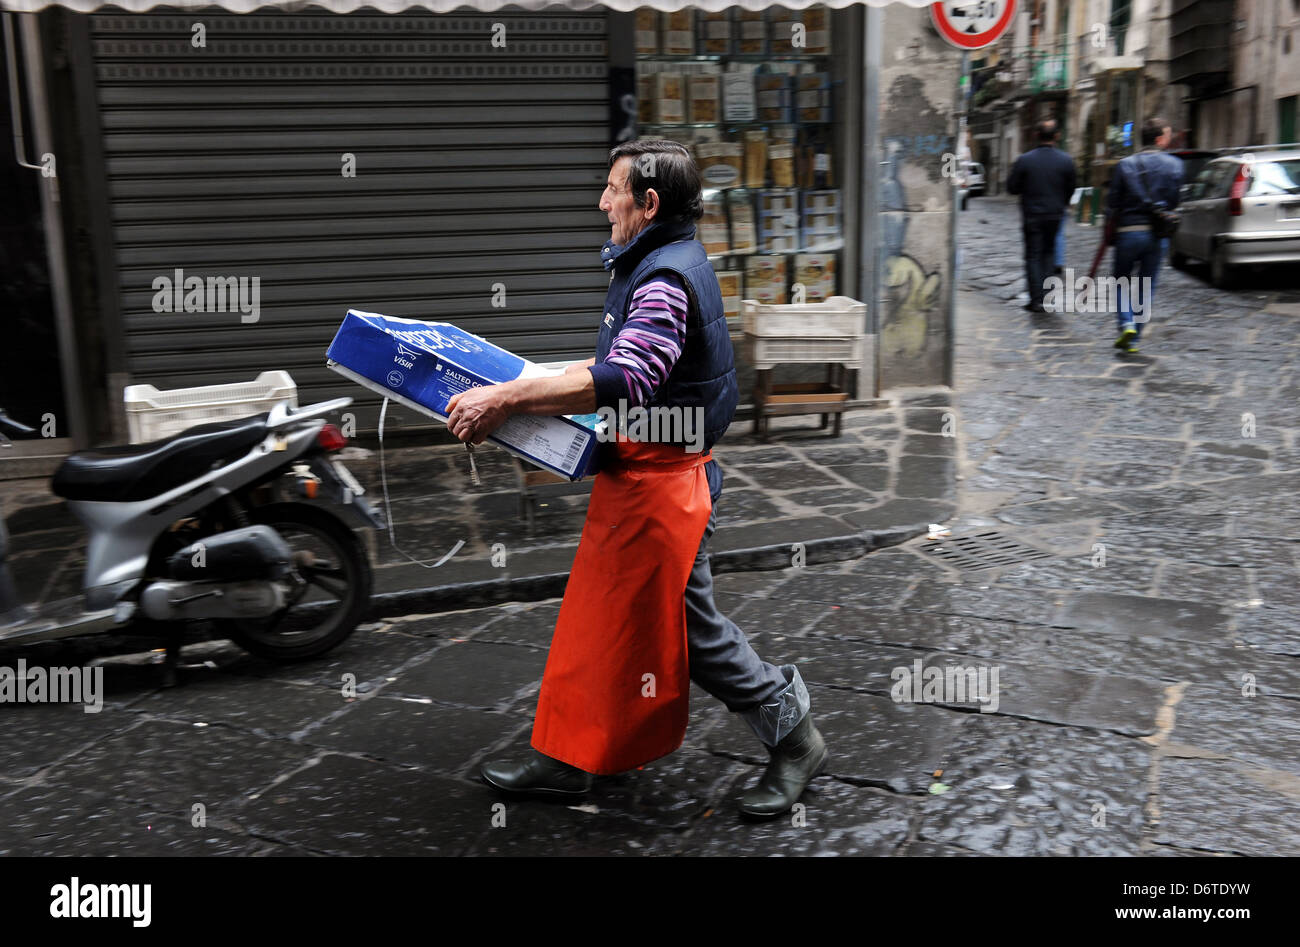 A fishmonger in Naples, Italy. Picture by Paul Heyes, Saturday March 30, 2013. - Stock Image